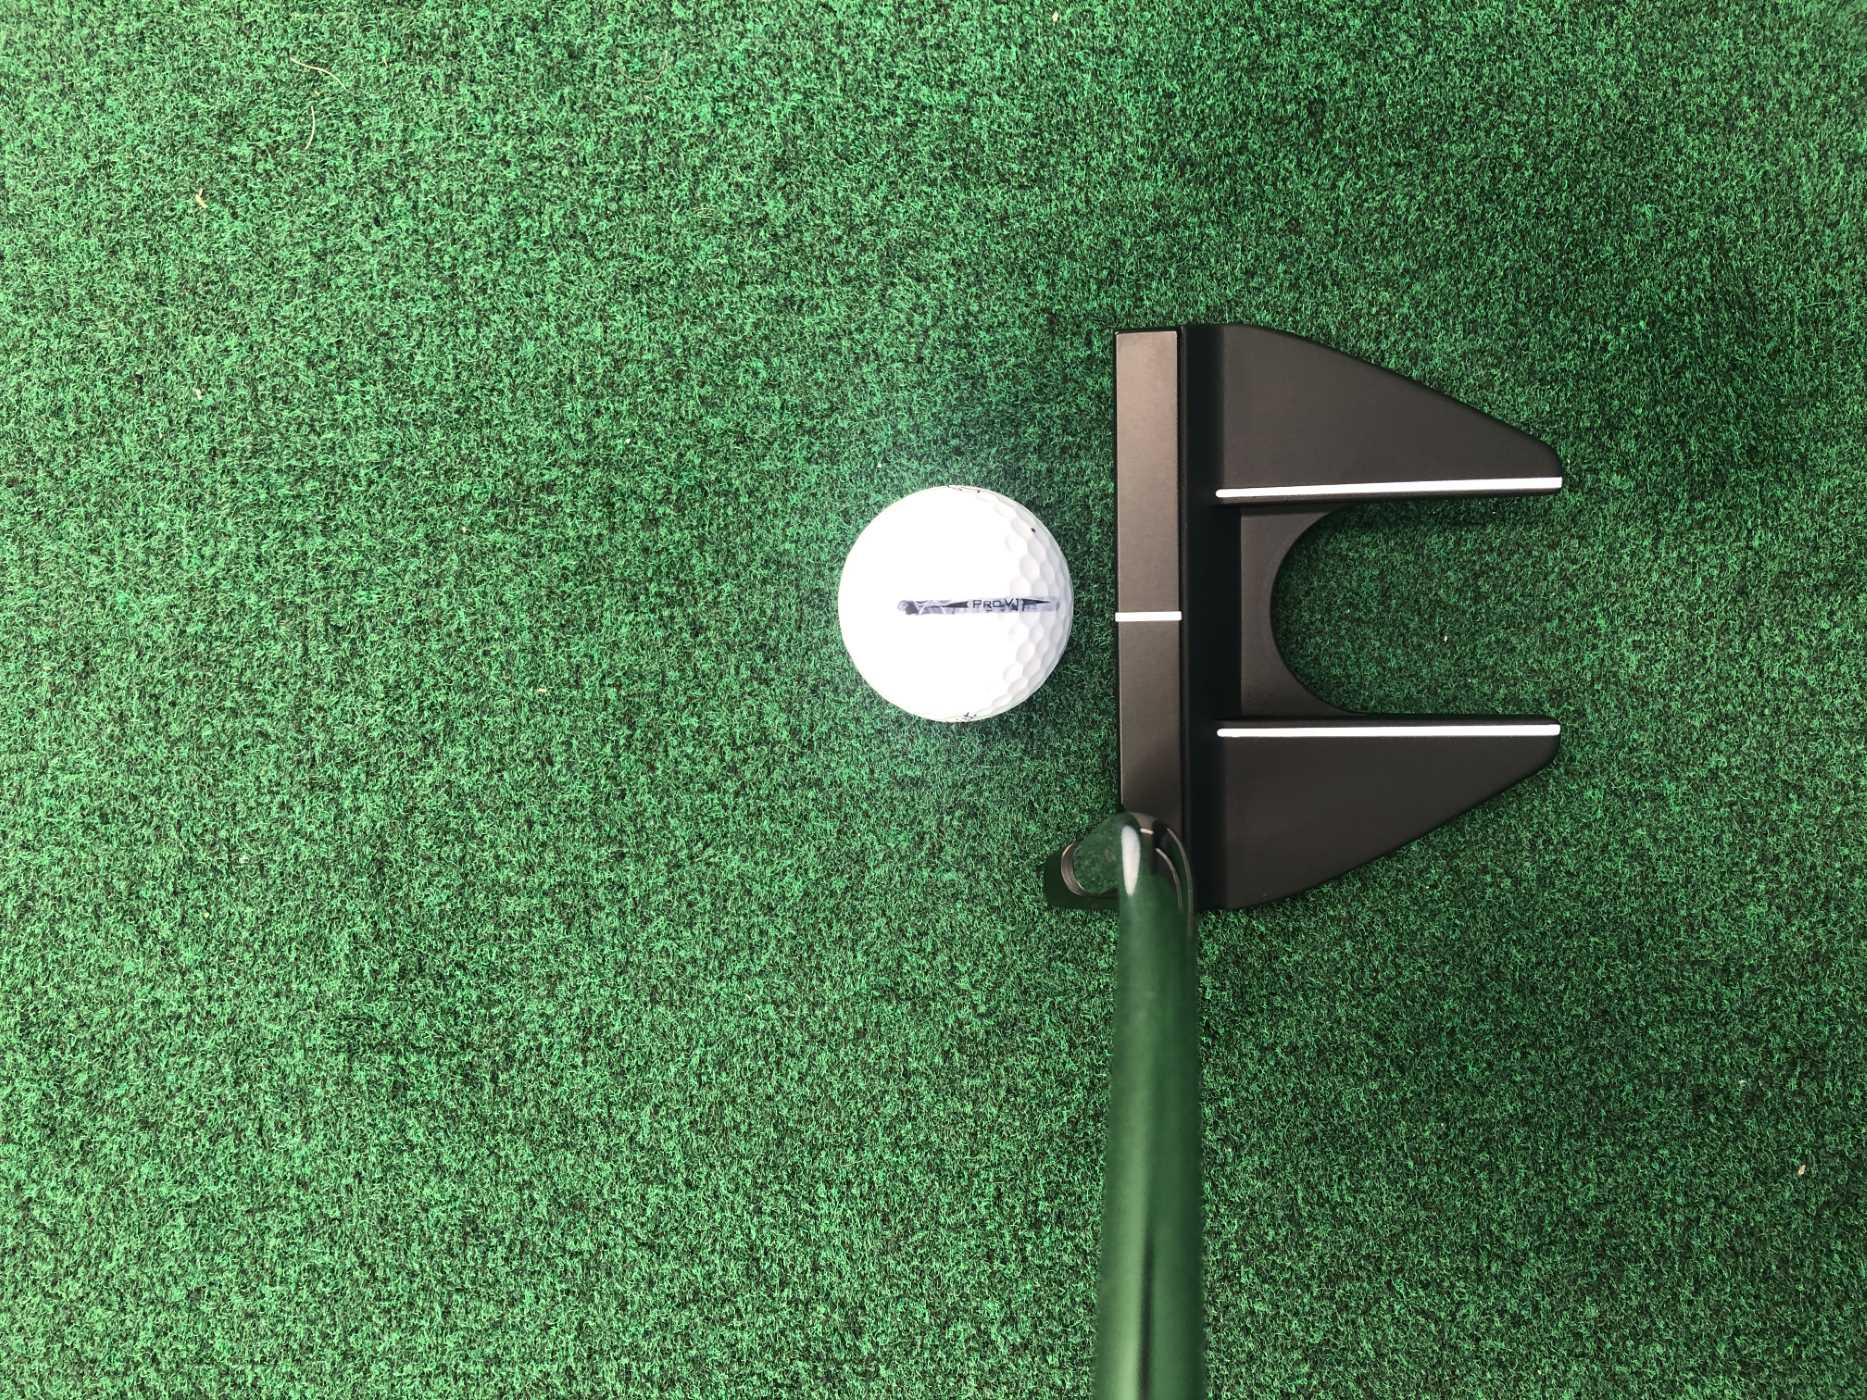 Axis1 Rose Black Putter